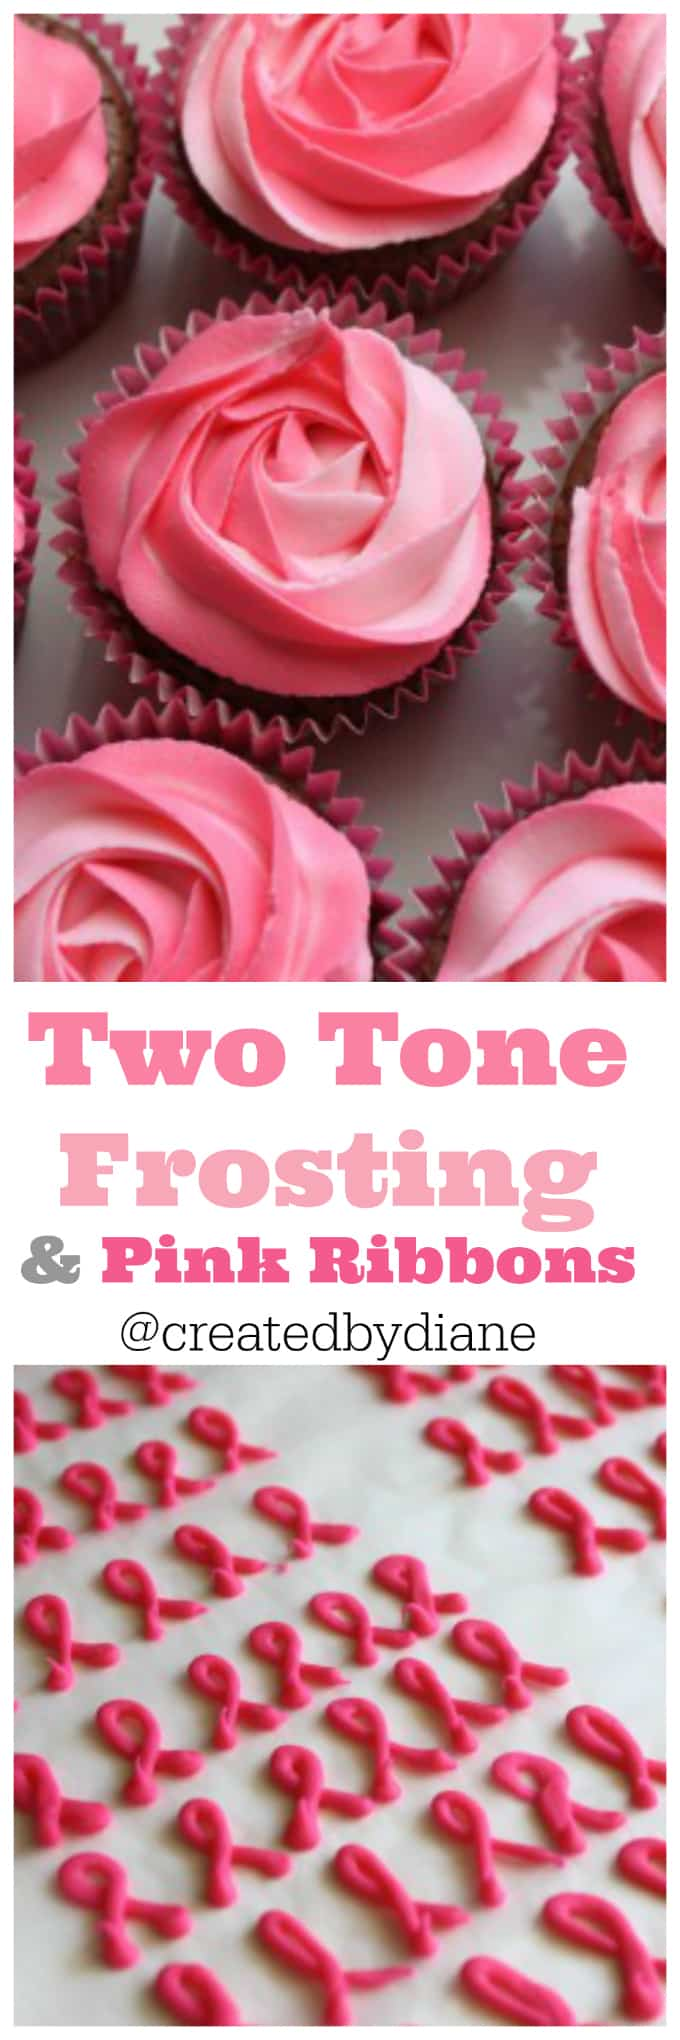 pink two-tone-frosting-and-pink-ribbons-october-breast-cancer-awareness-createdbydiane